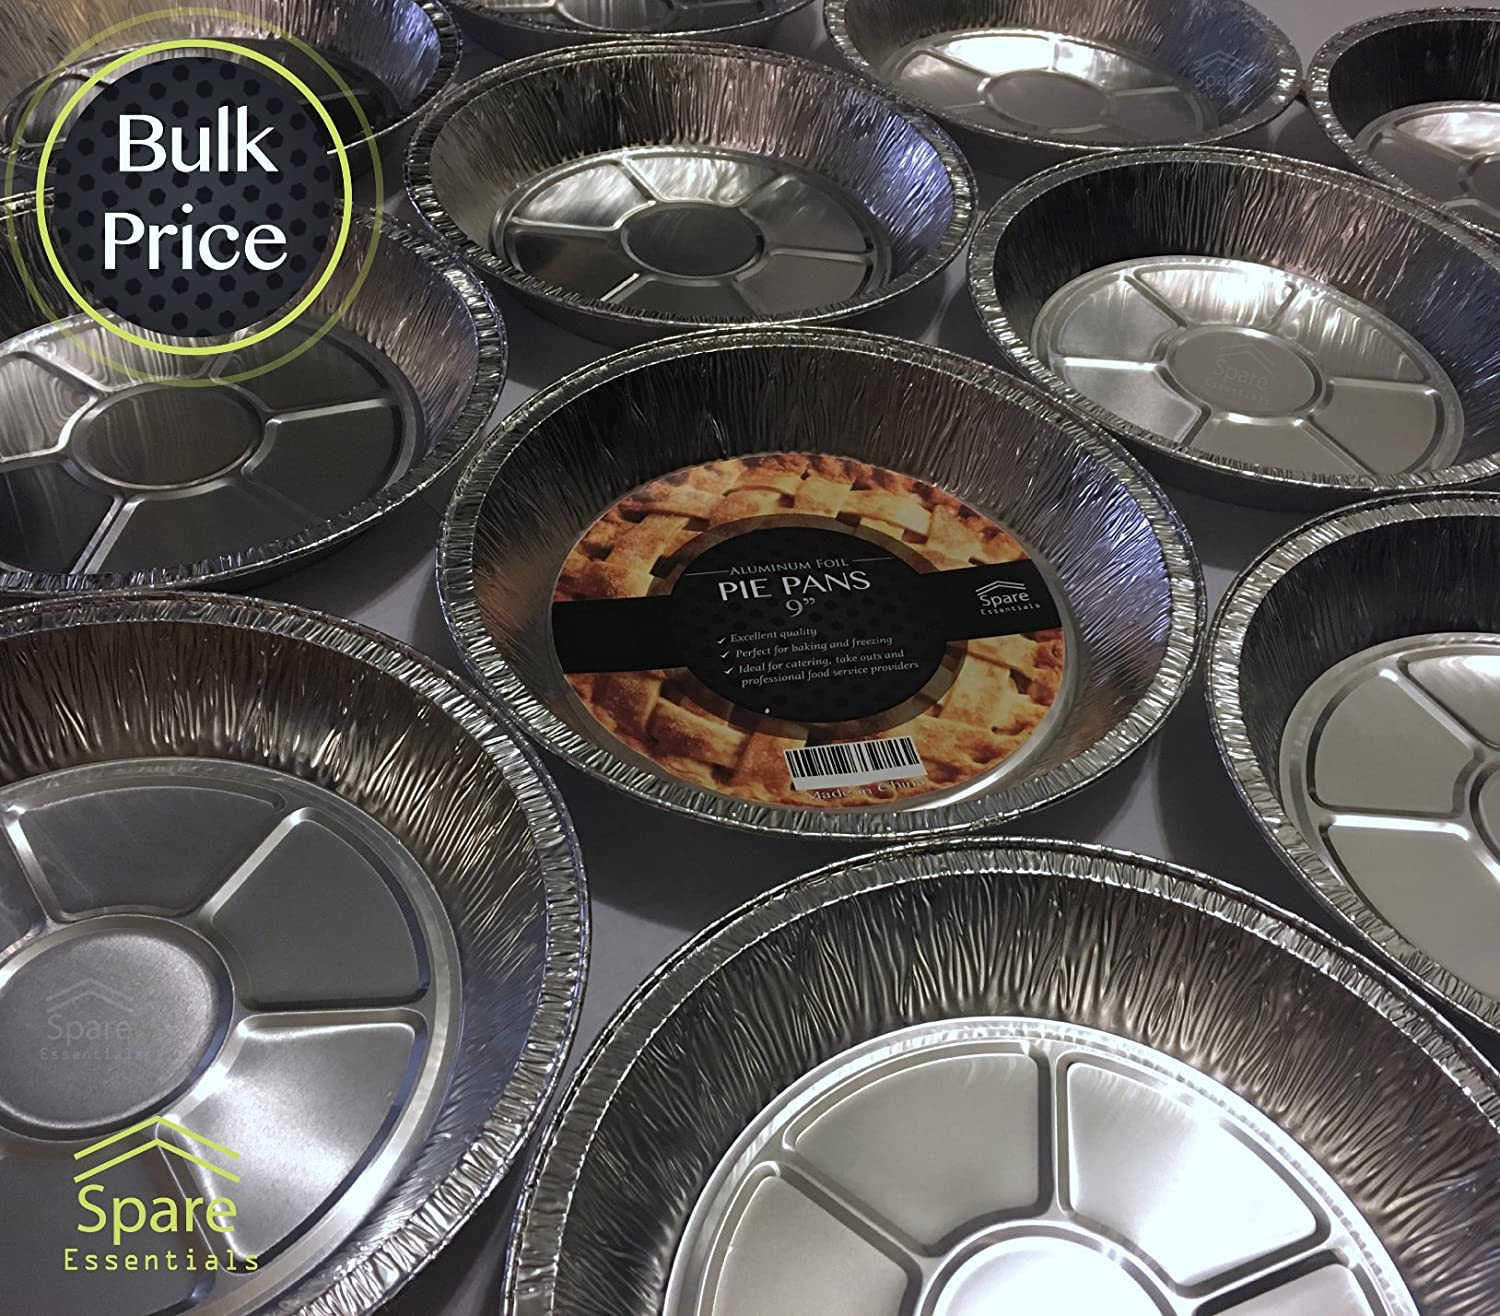 Amazon.com 25 PACK - Prime Pie Pans. Ideal for Tasteful Cakes and Pies. Sturdy Aluminum Foil Pans. Disposable Tin Plates for Tart / Pie - SIZE 9u0027u0027 Kitchen ... & Amazon.com: 25 PACK - Prime Pie Pans. Ideal for Tasteful Cakes and ...